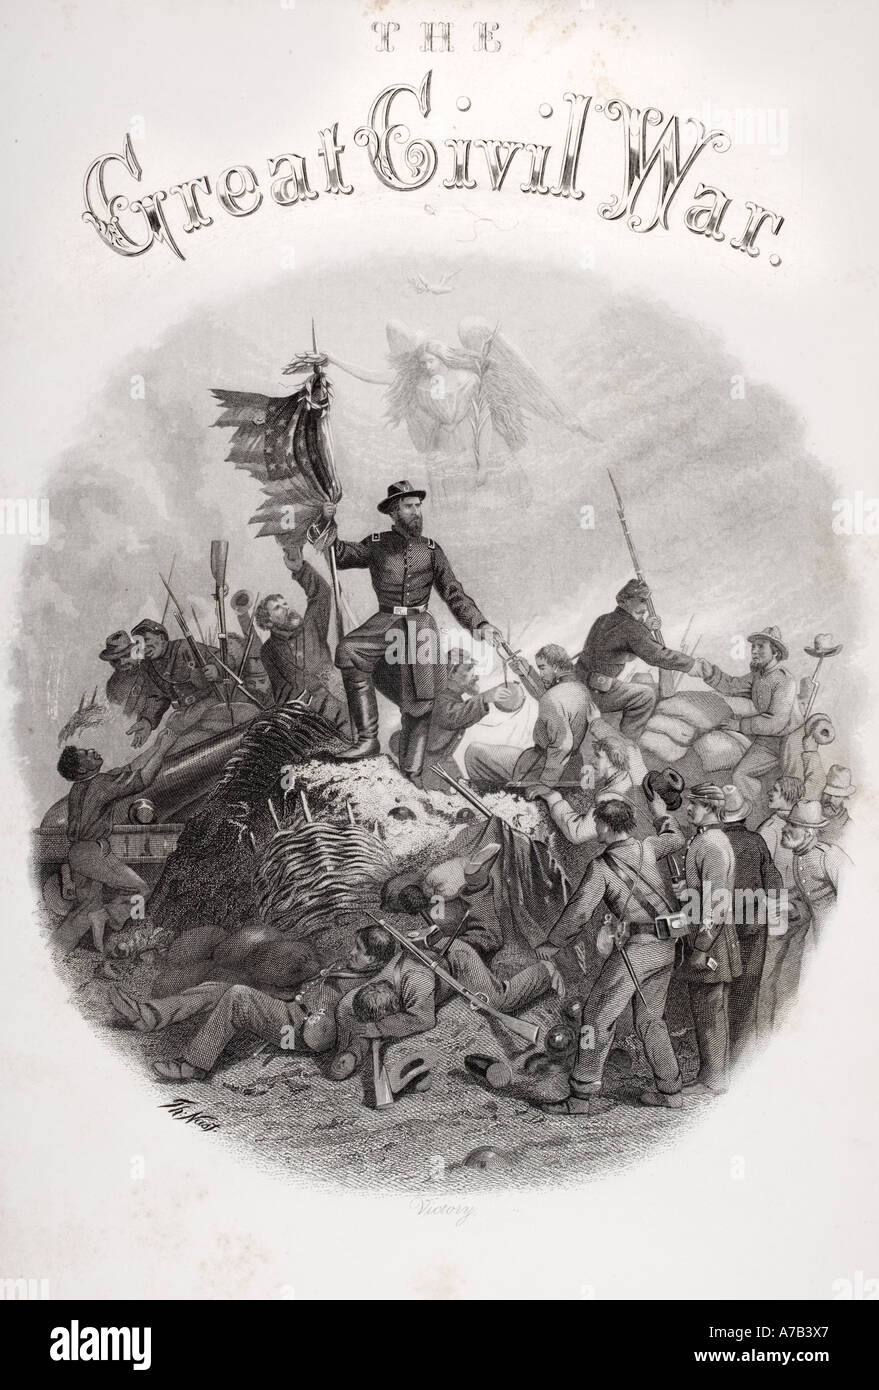 Allegorical engraving of Victory in American Civil War - Stock Image